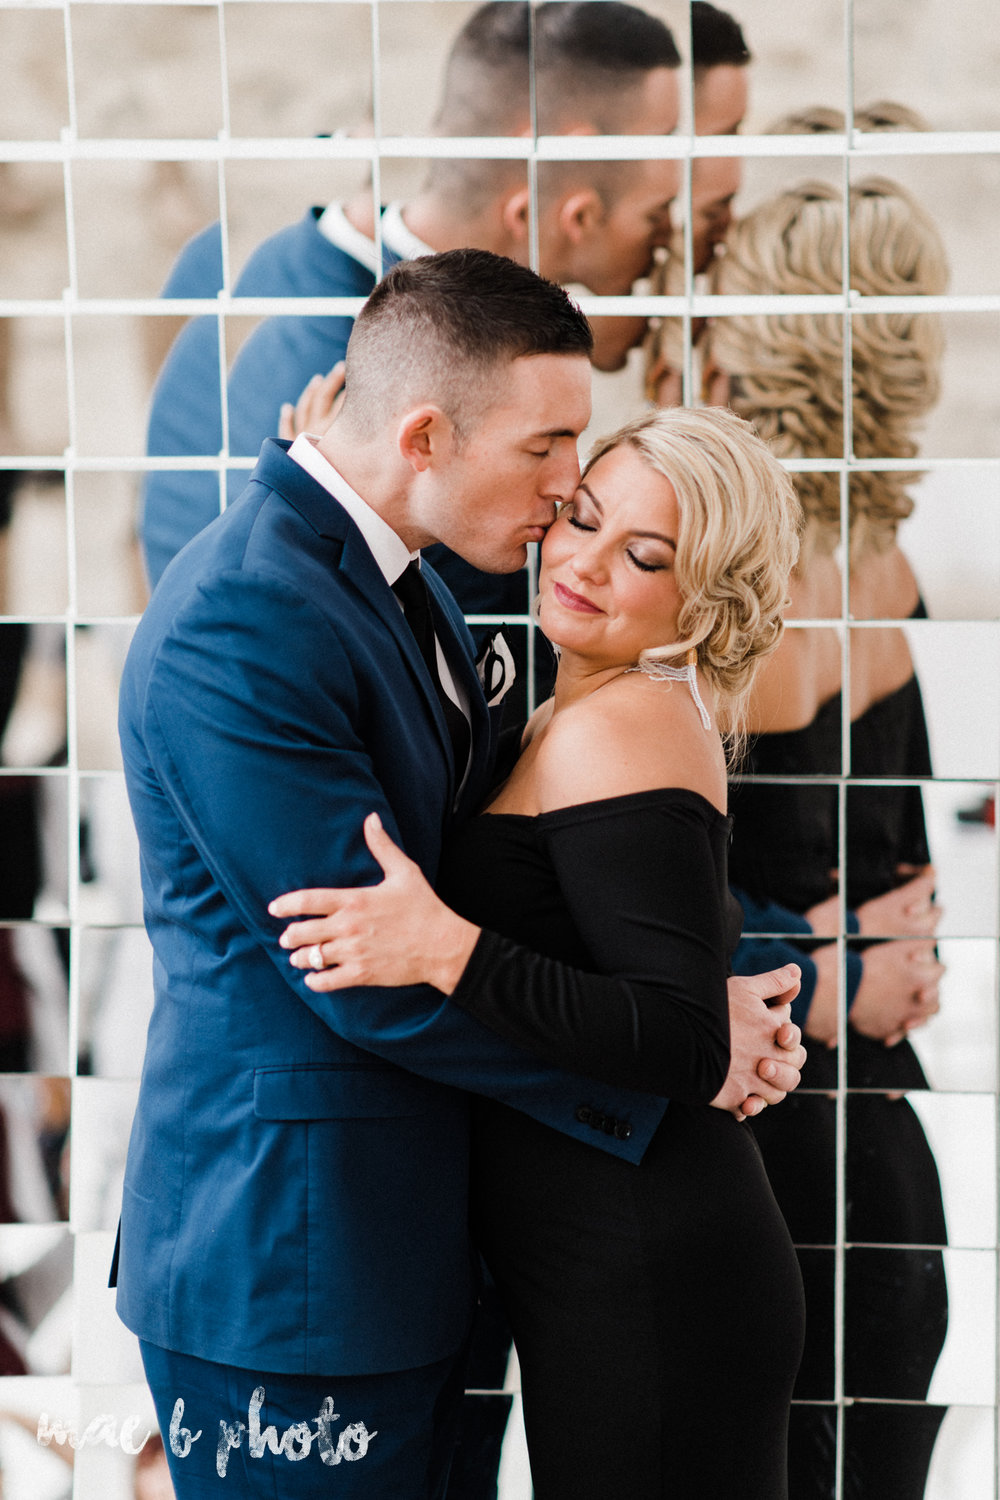 paige and cale's personalized winter glam engagement session at the butler institute of american art and downtown youngstown in youngstown ohio photographed by youngstown wedding photographer mae b photo-14.jpg